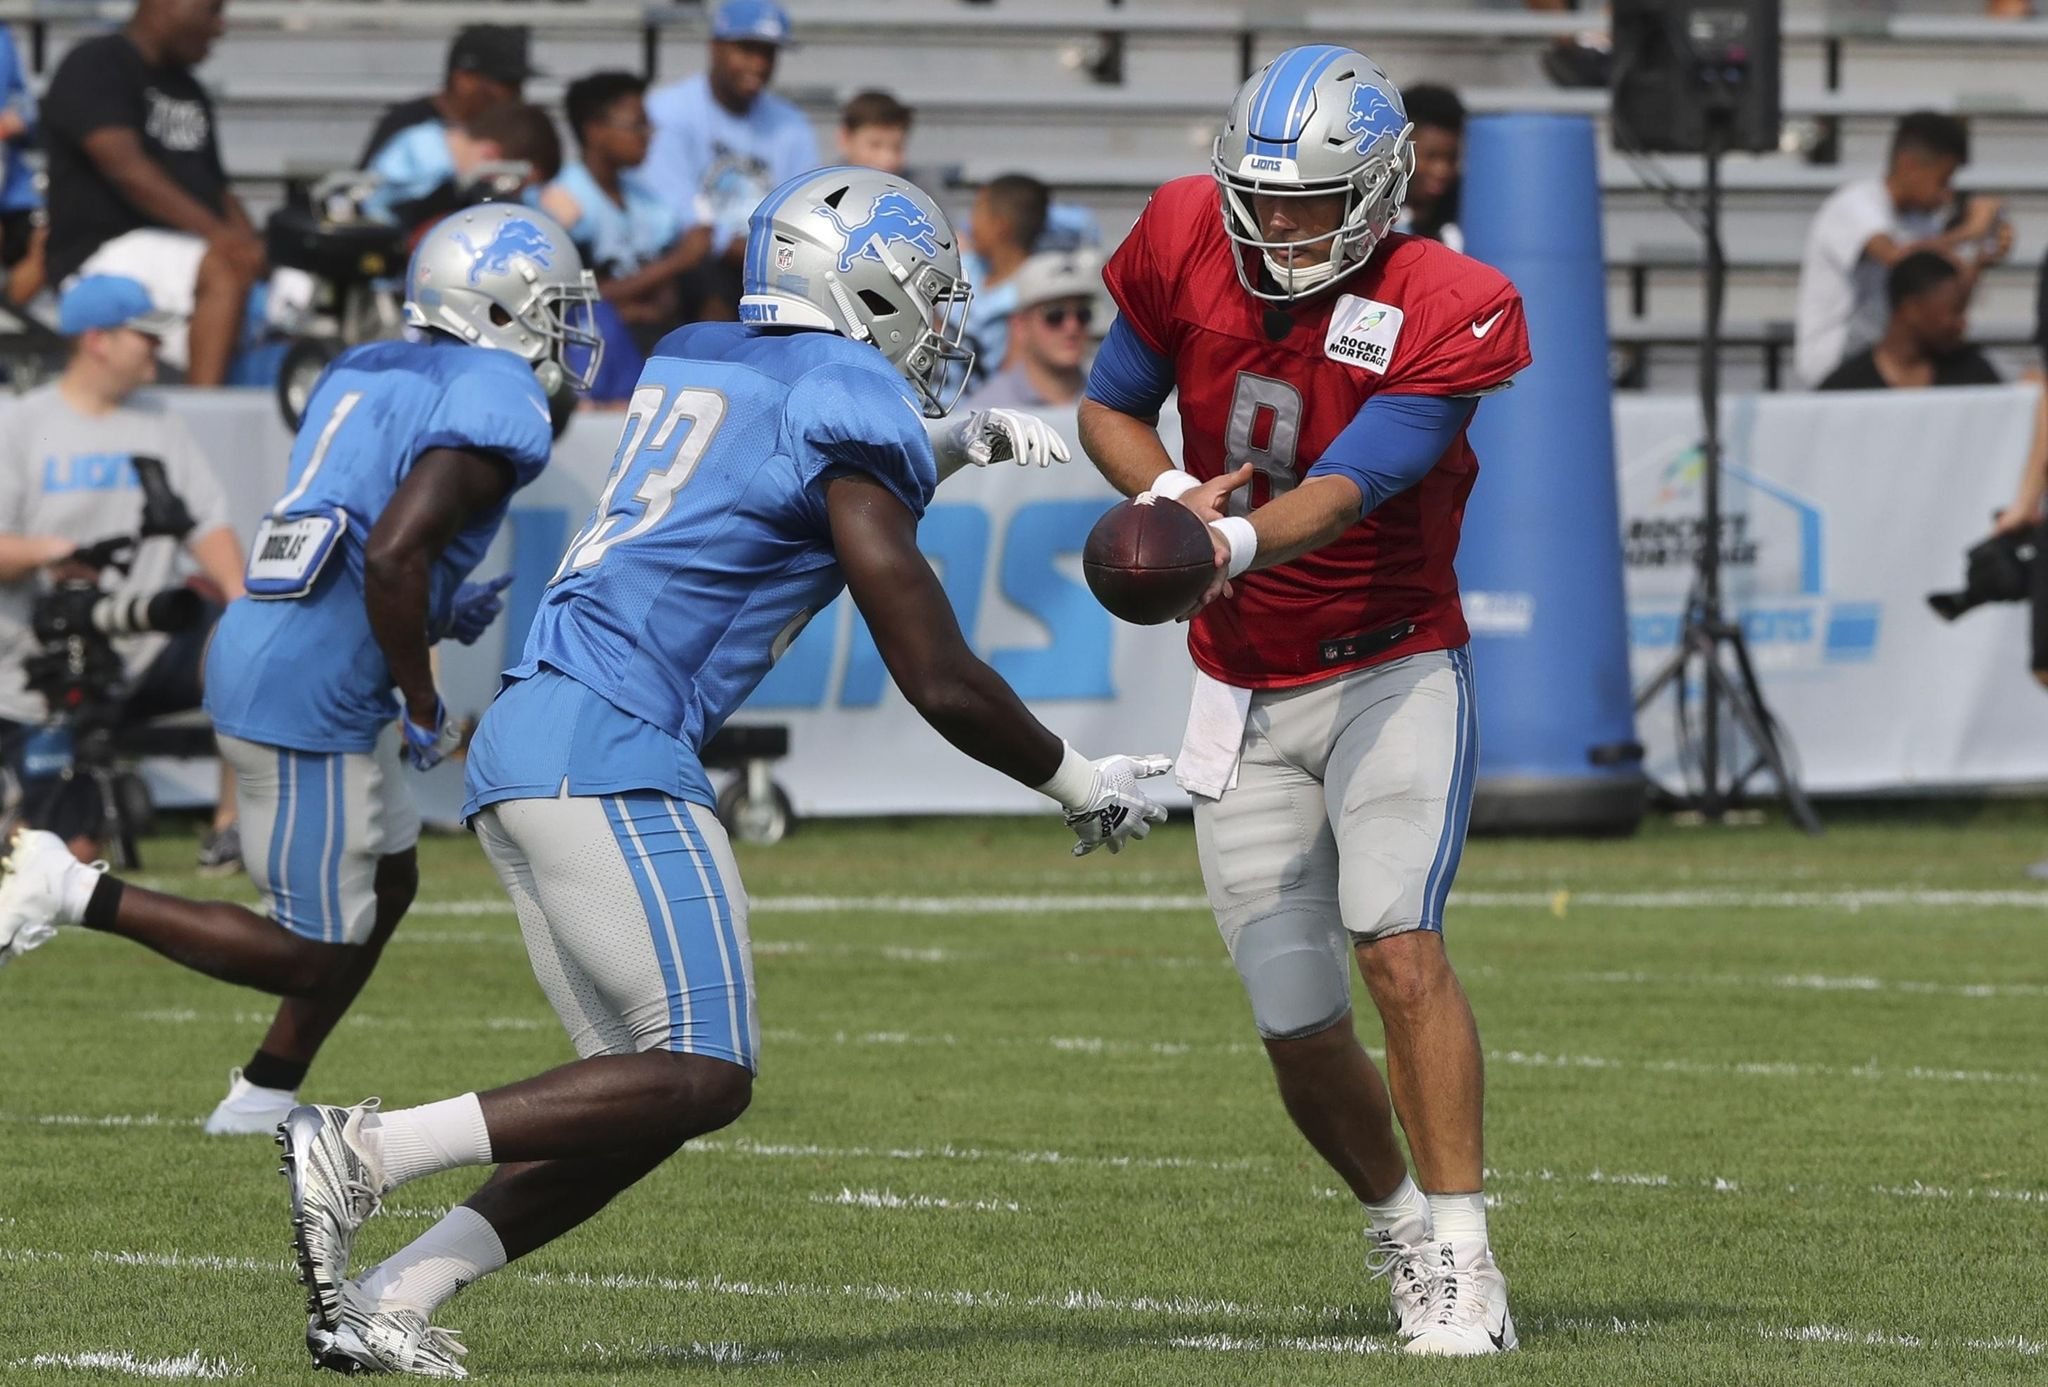 Lions_camp_football_07642_s2048x1387